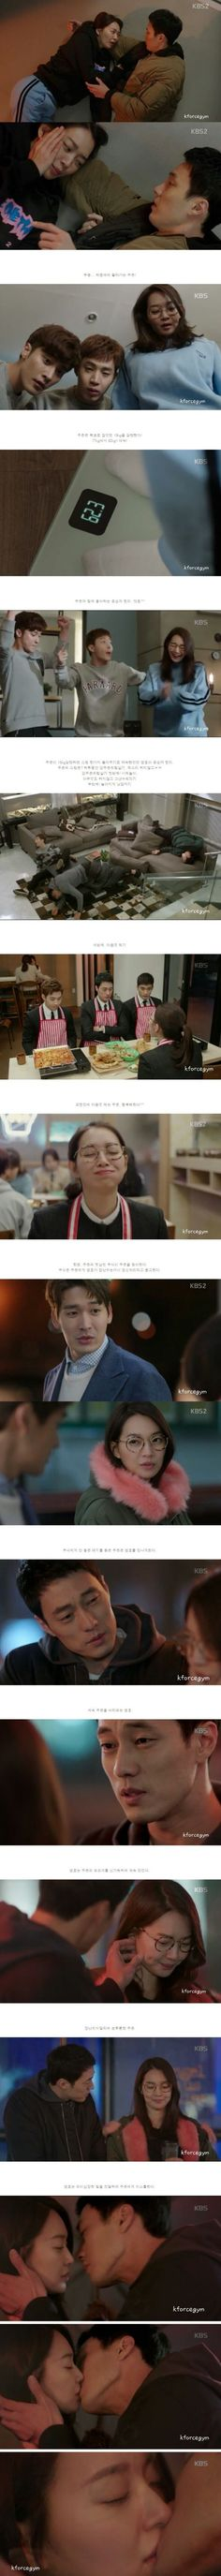 Added episode 6 captures for the Korean drama 'Oh My Venus'.